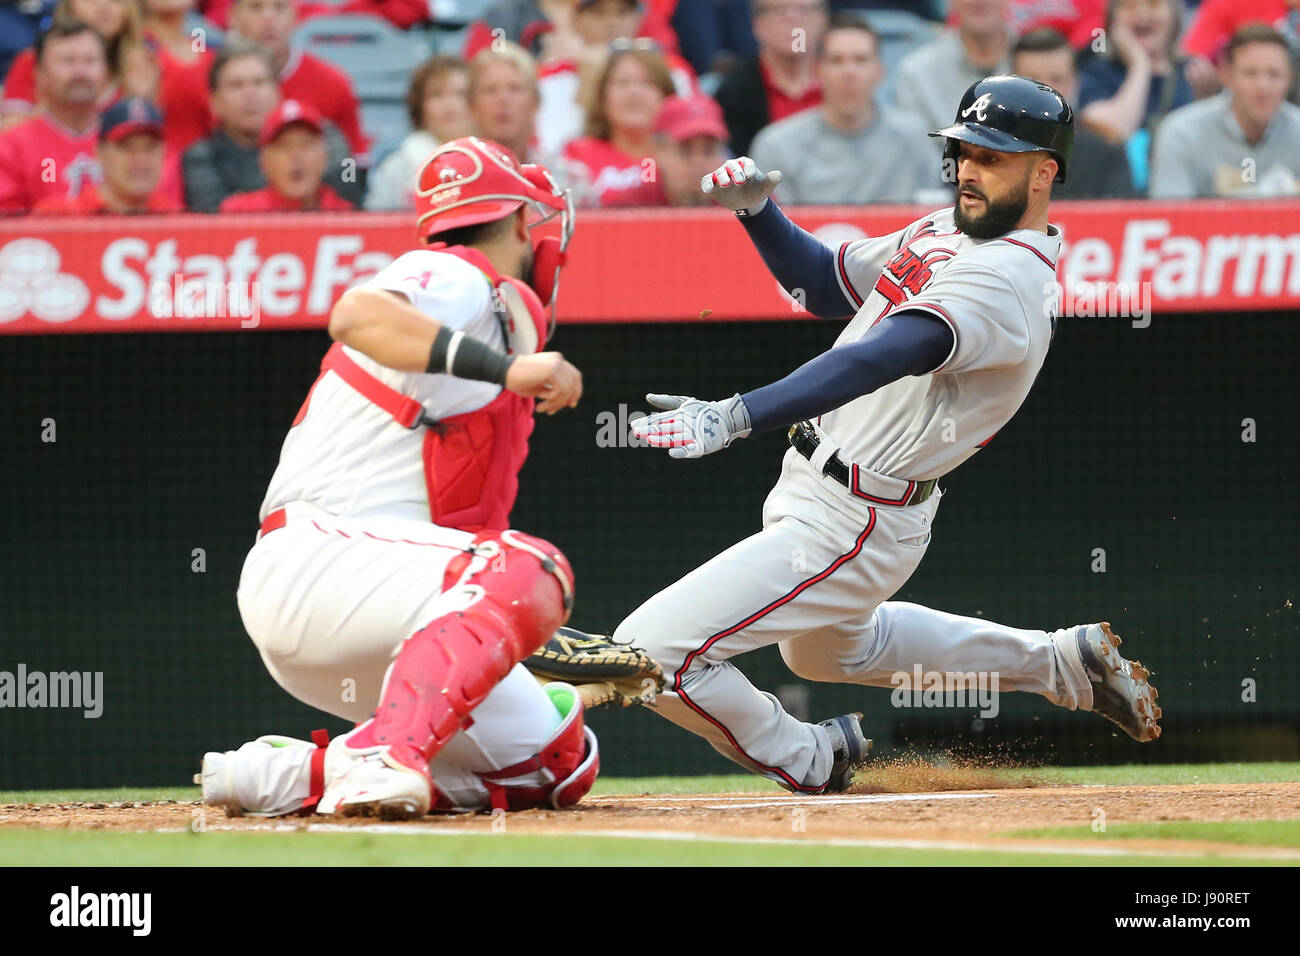 Los Angeles, California, USA. 30th May, 2017. May 30, 2017: in the game between the Atlanta Braves and Los Angeles Stock Photo